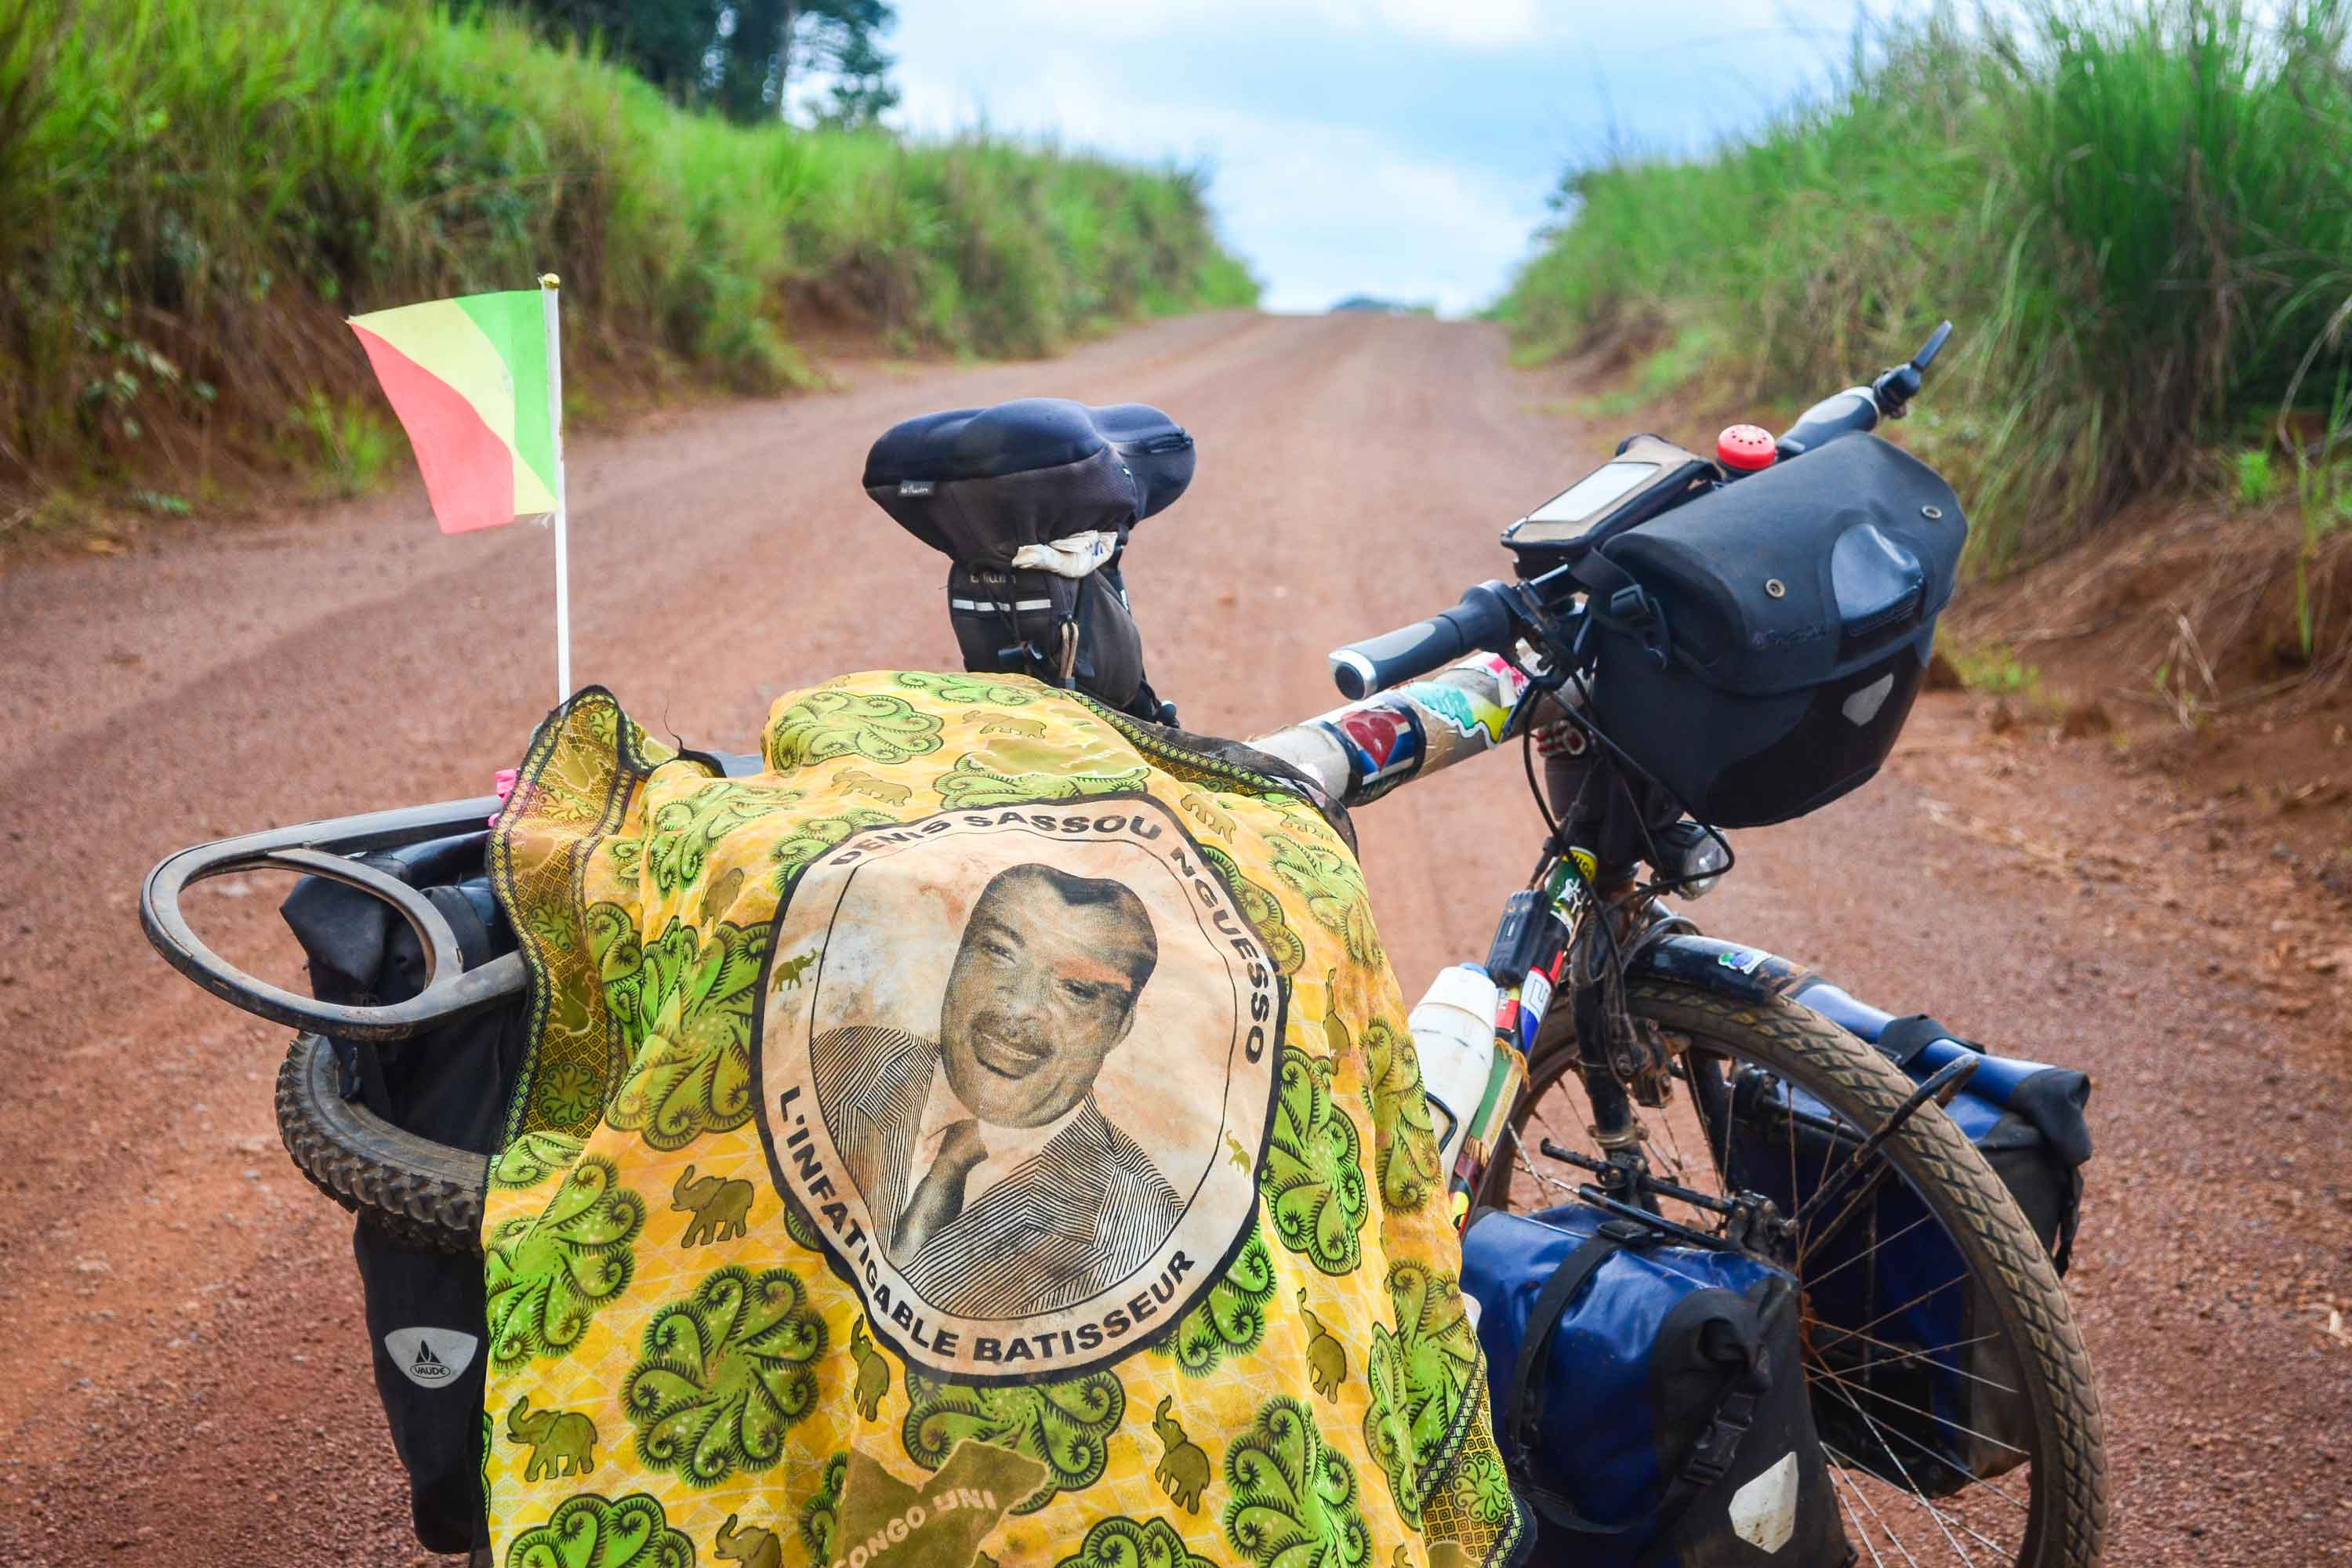 A flag with a portrait of Congo's President, Denis Sassou Nguesso, lies draped over a road bike.